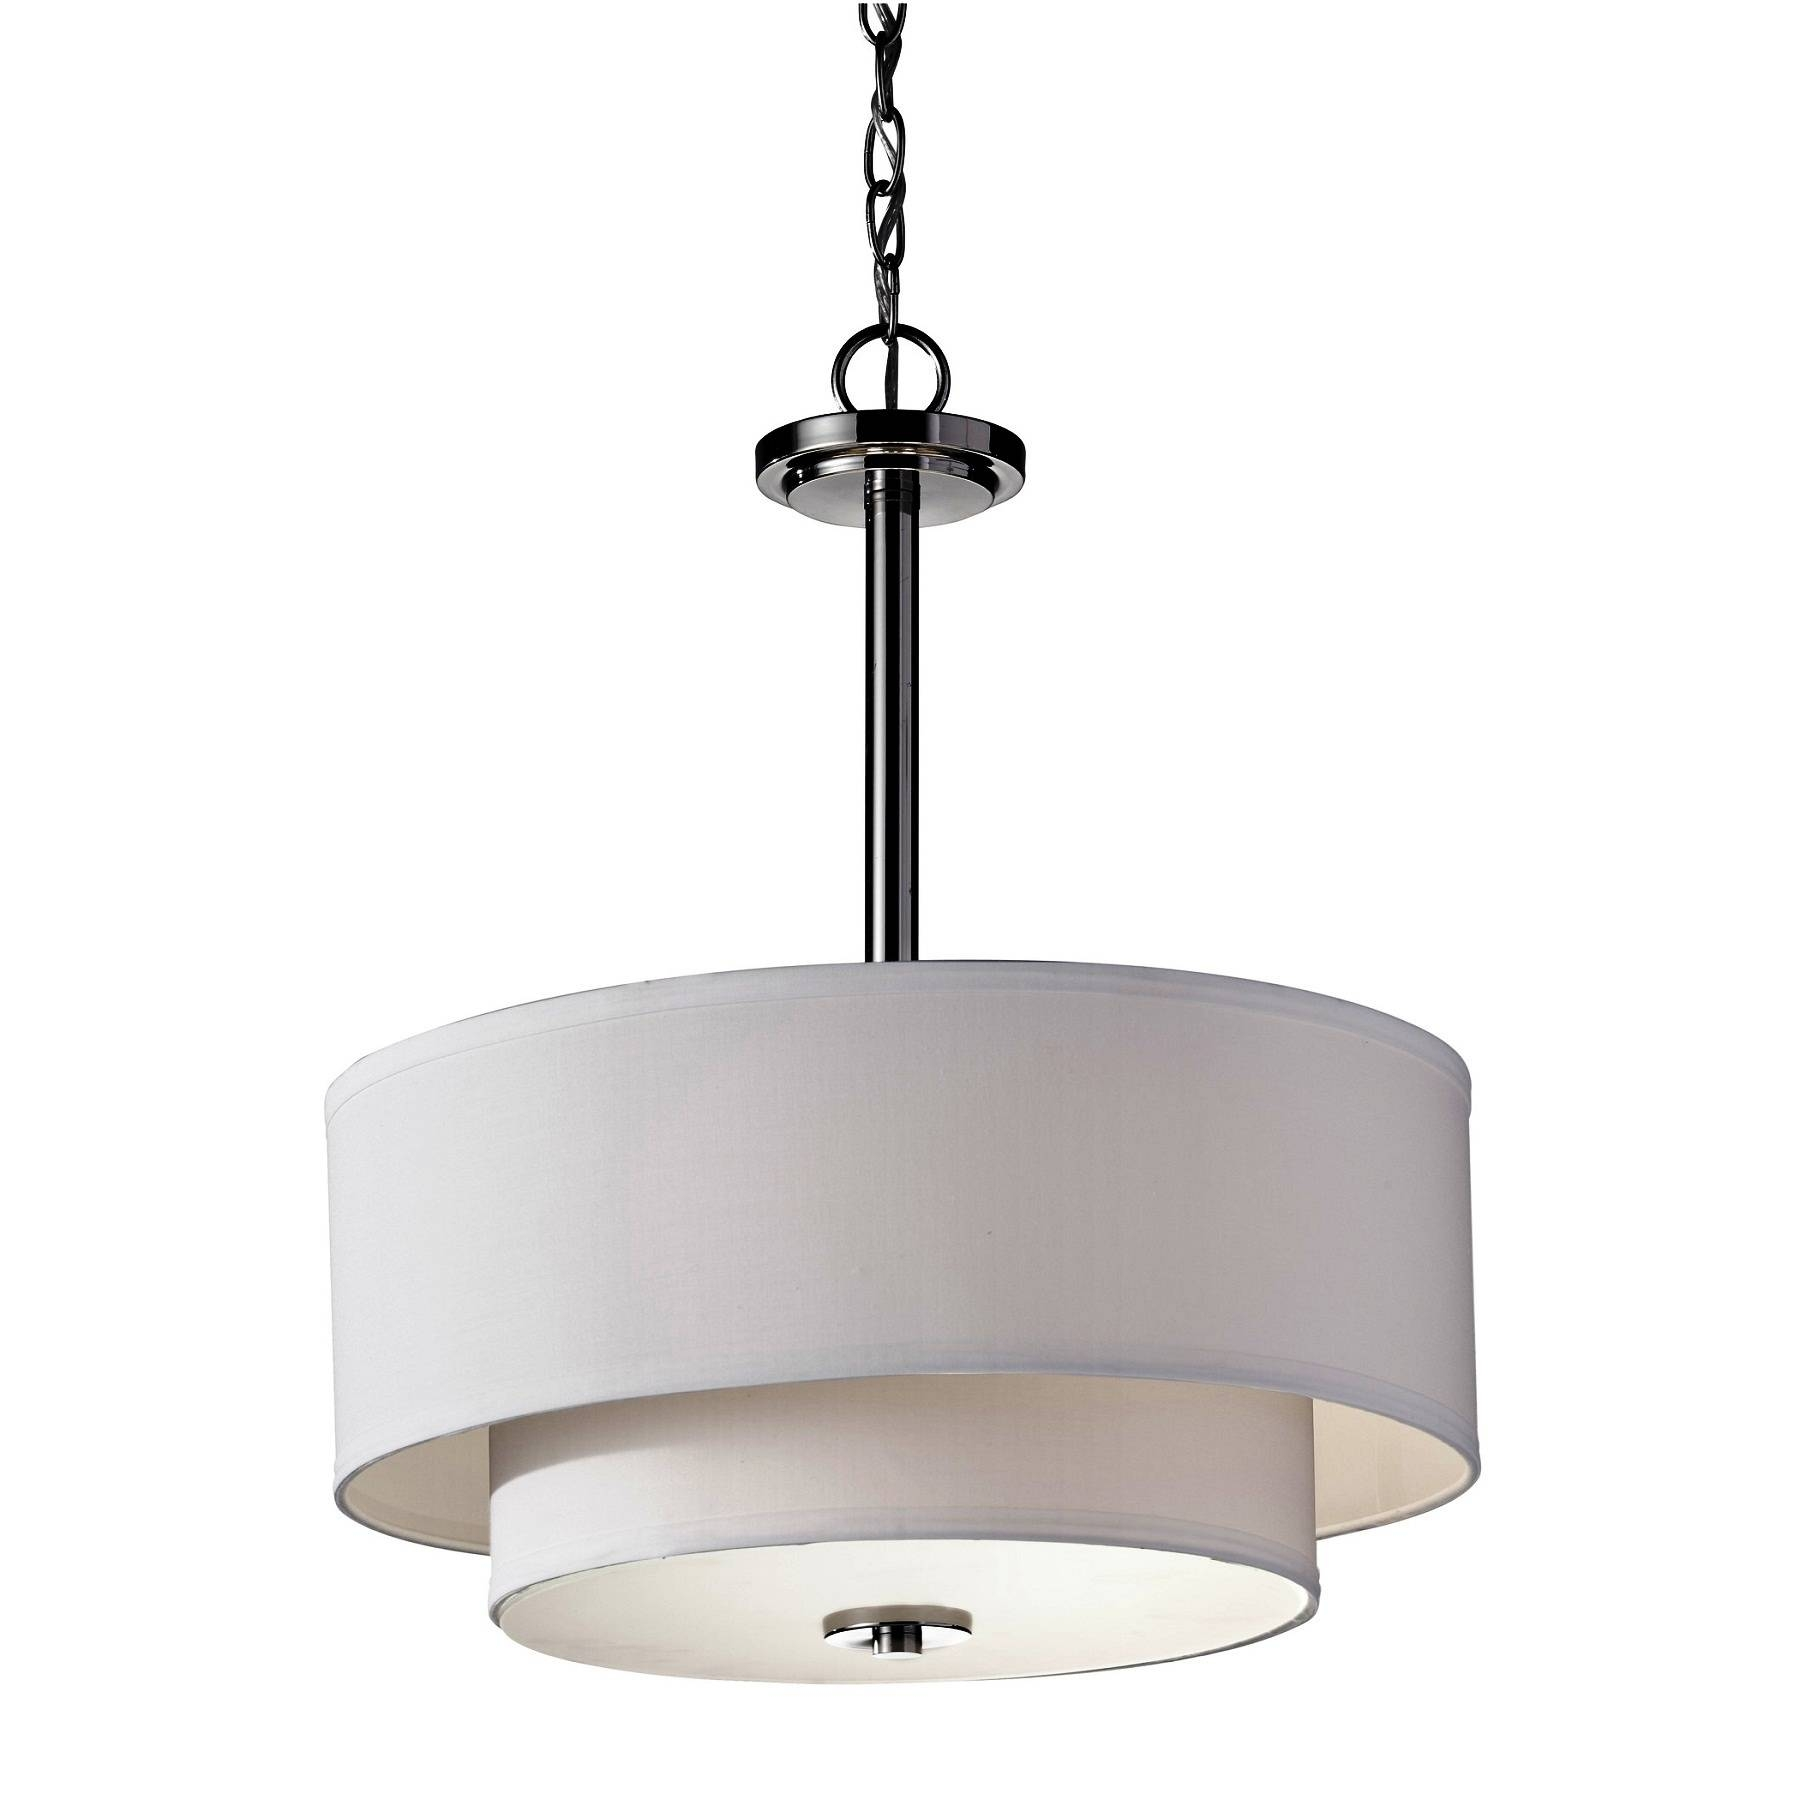 Crate And Barrel Chandelier – Tendr Intended For Crate And Barrel Shades (View 4 of 15)